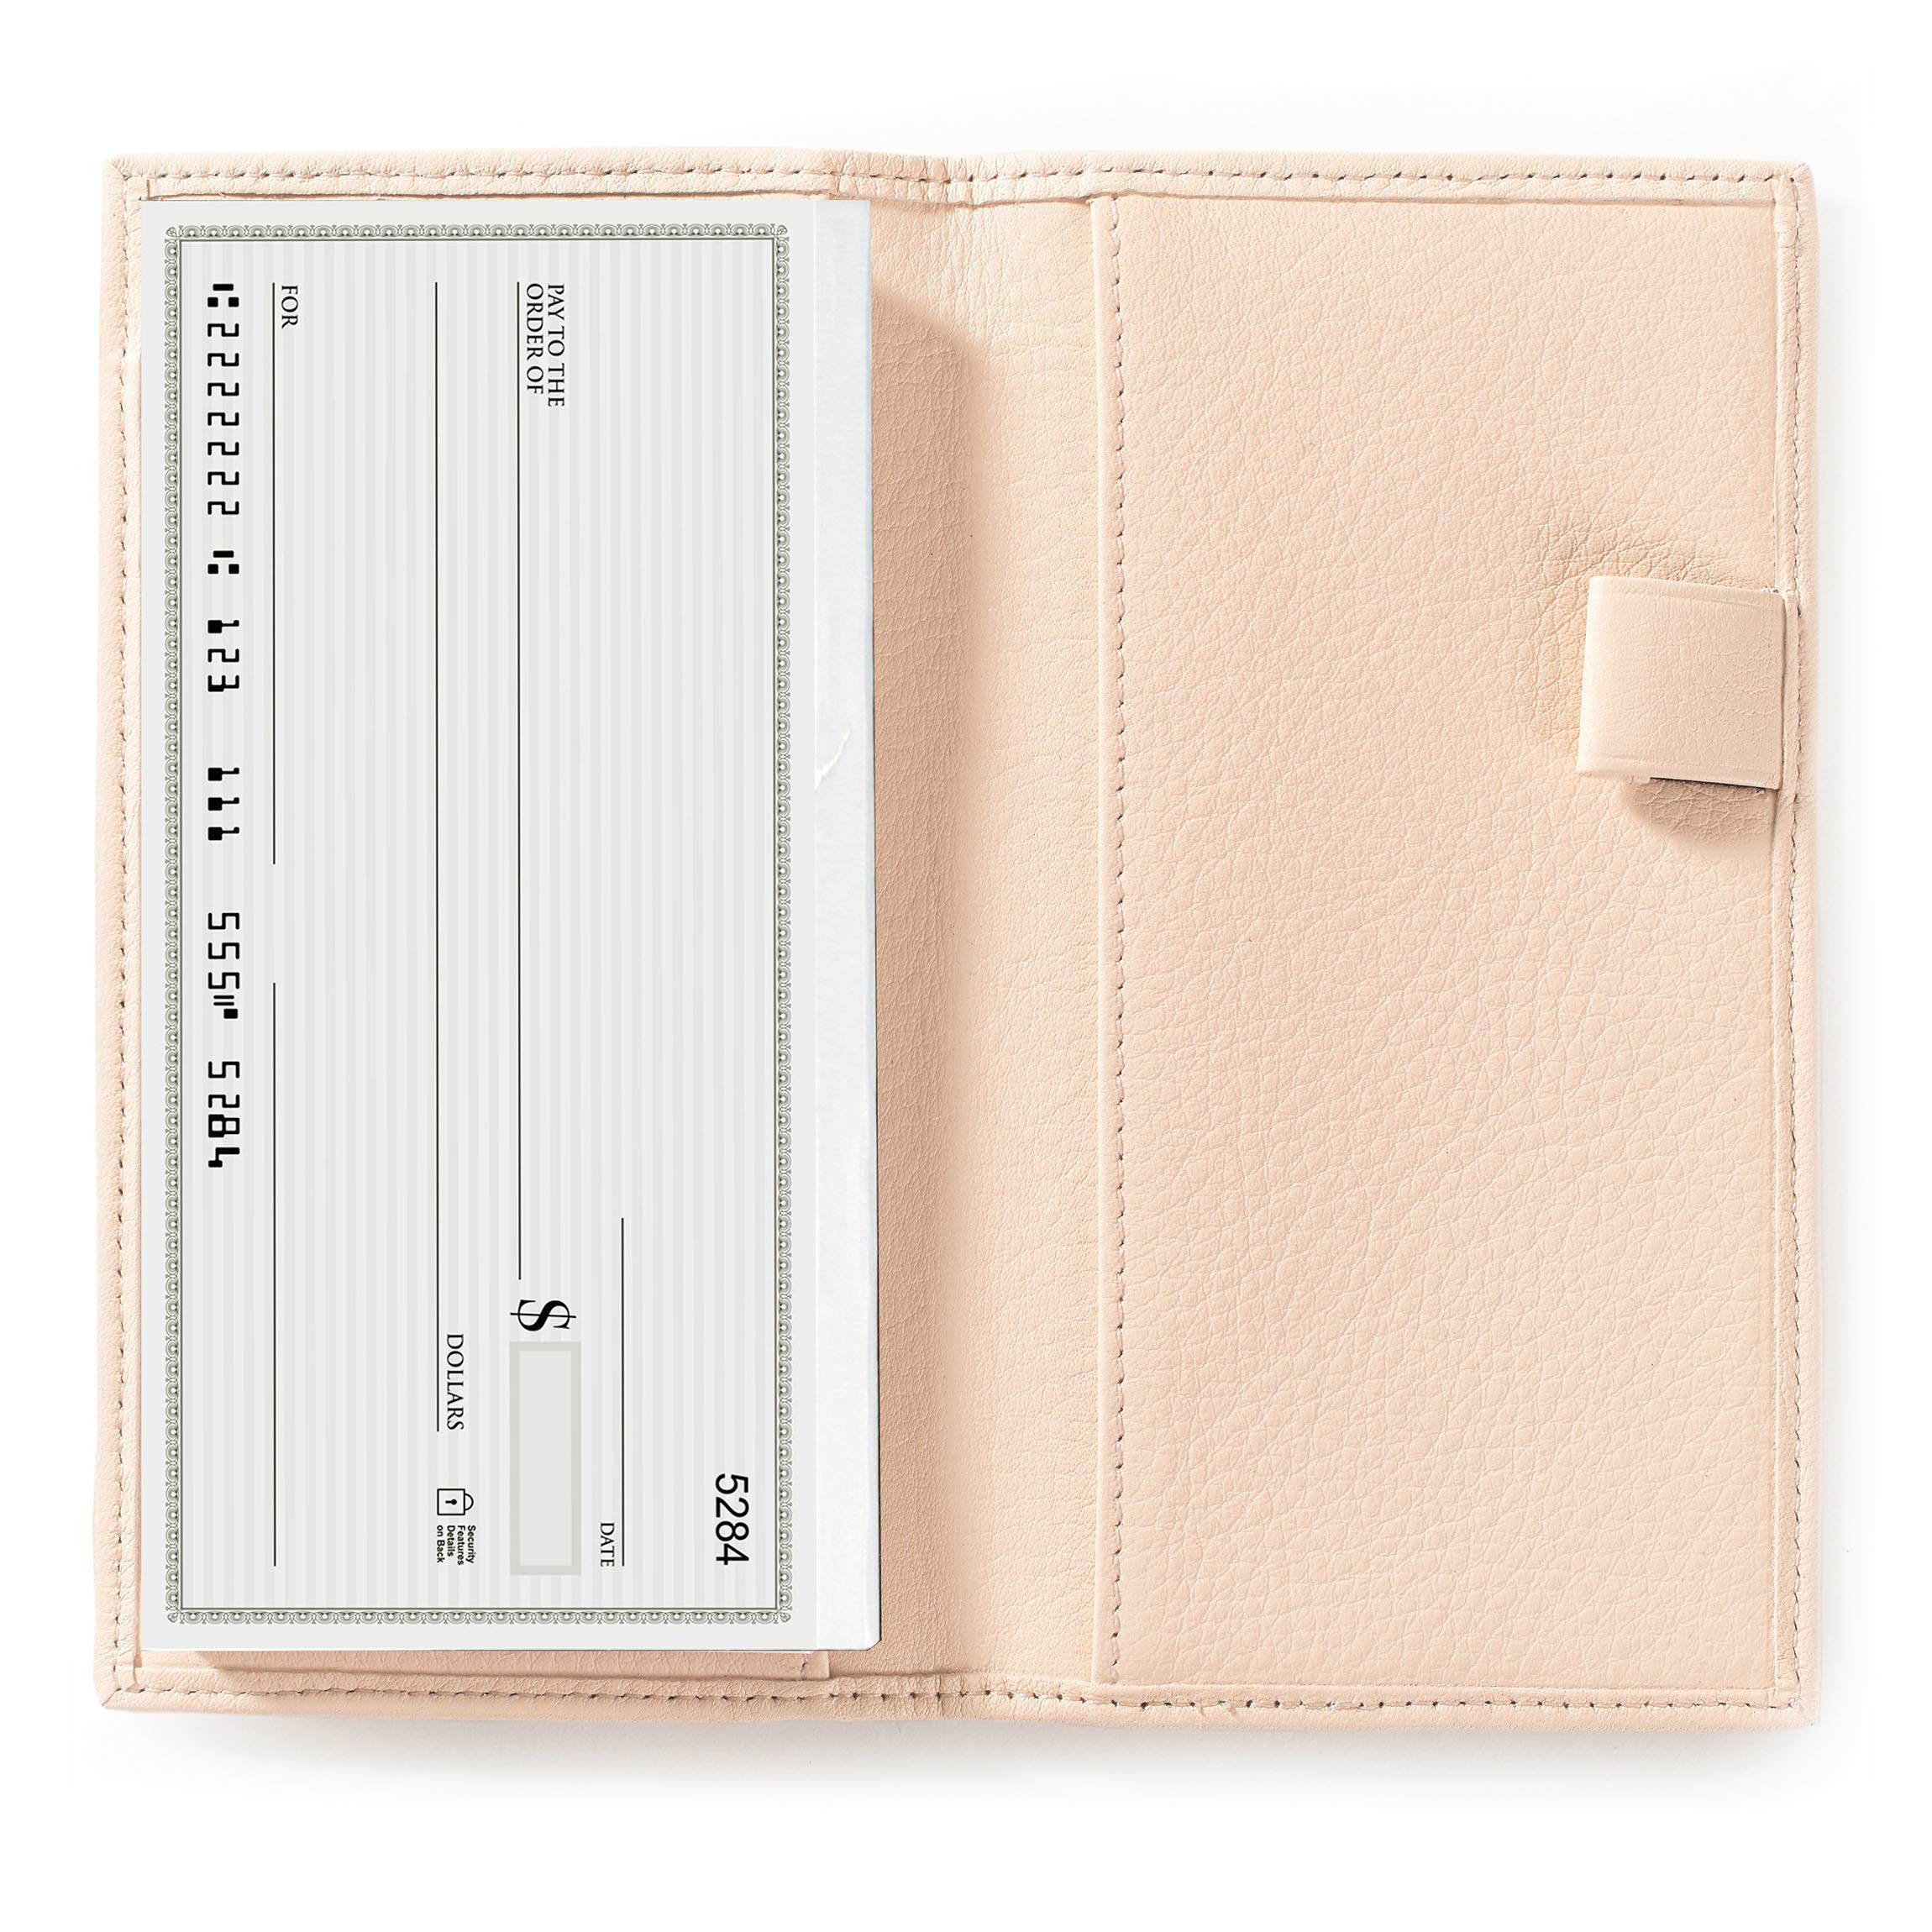 Deluxe Checkbook Cover with Divider - Full Grain Leather Leather - Rose (pink)